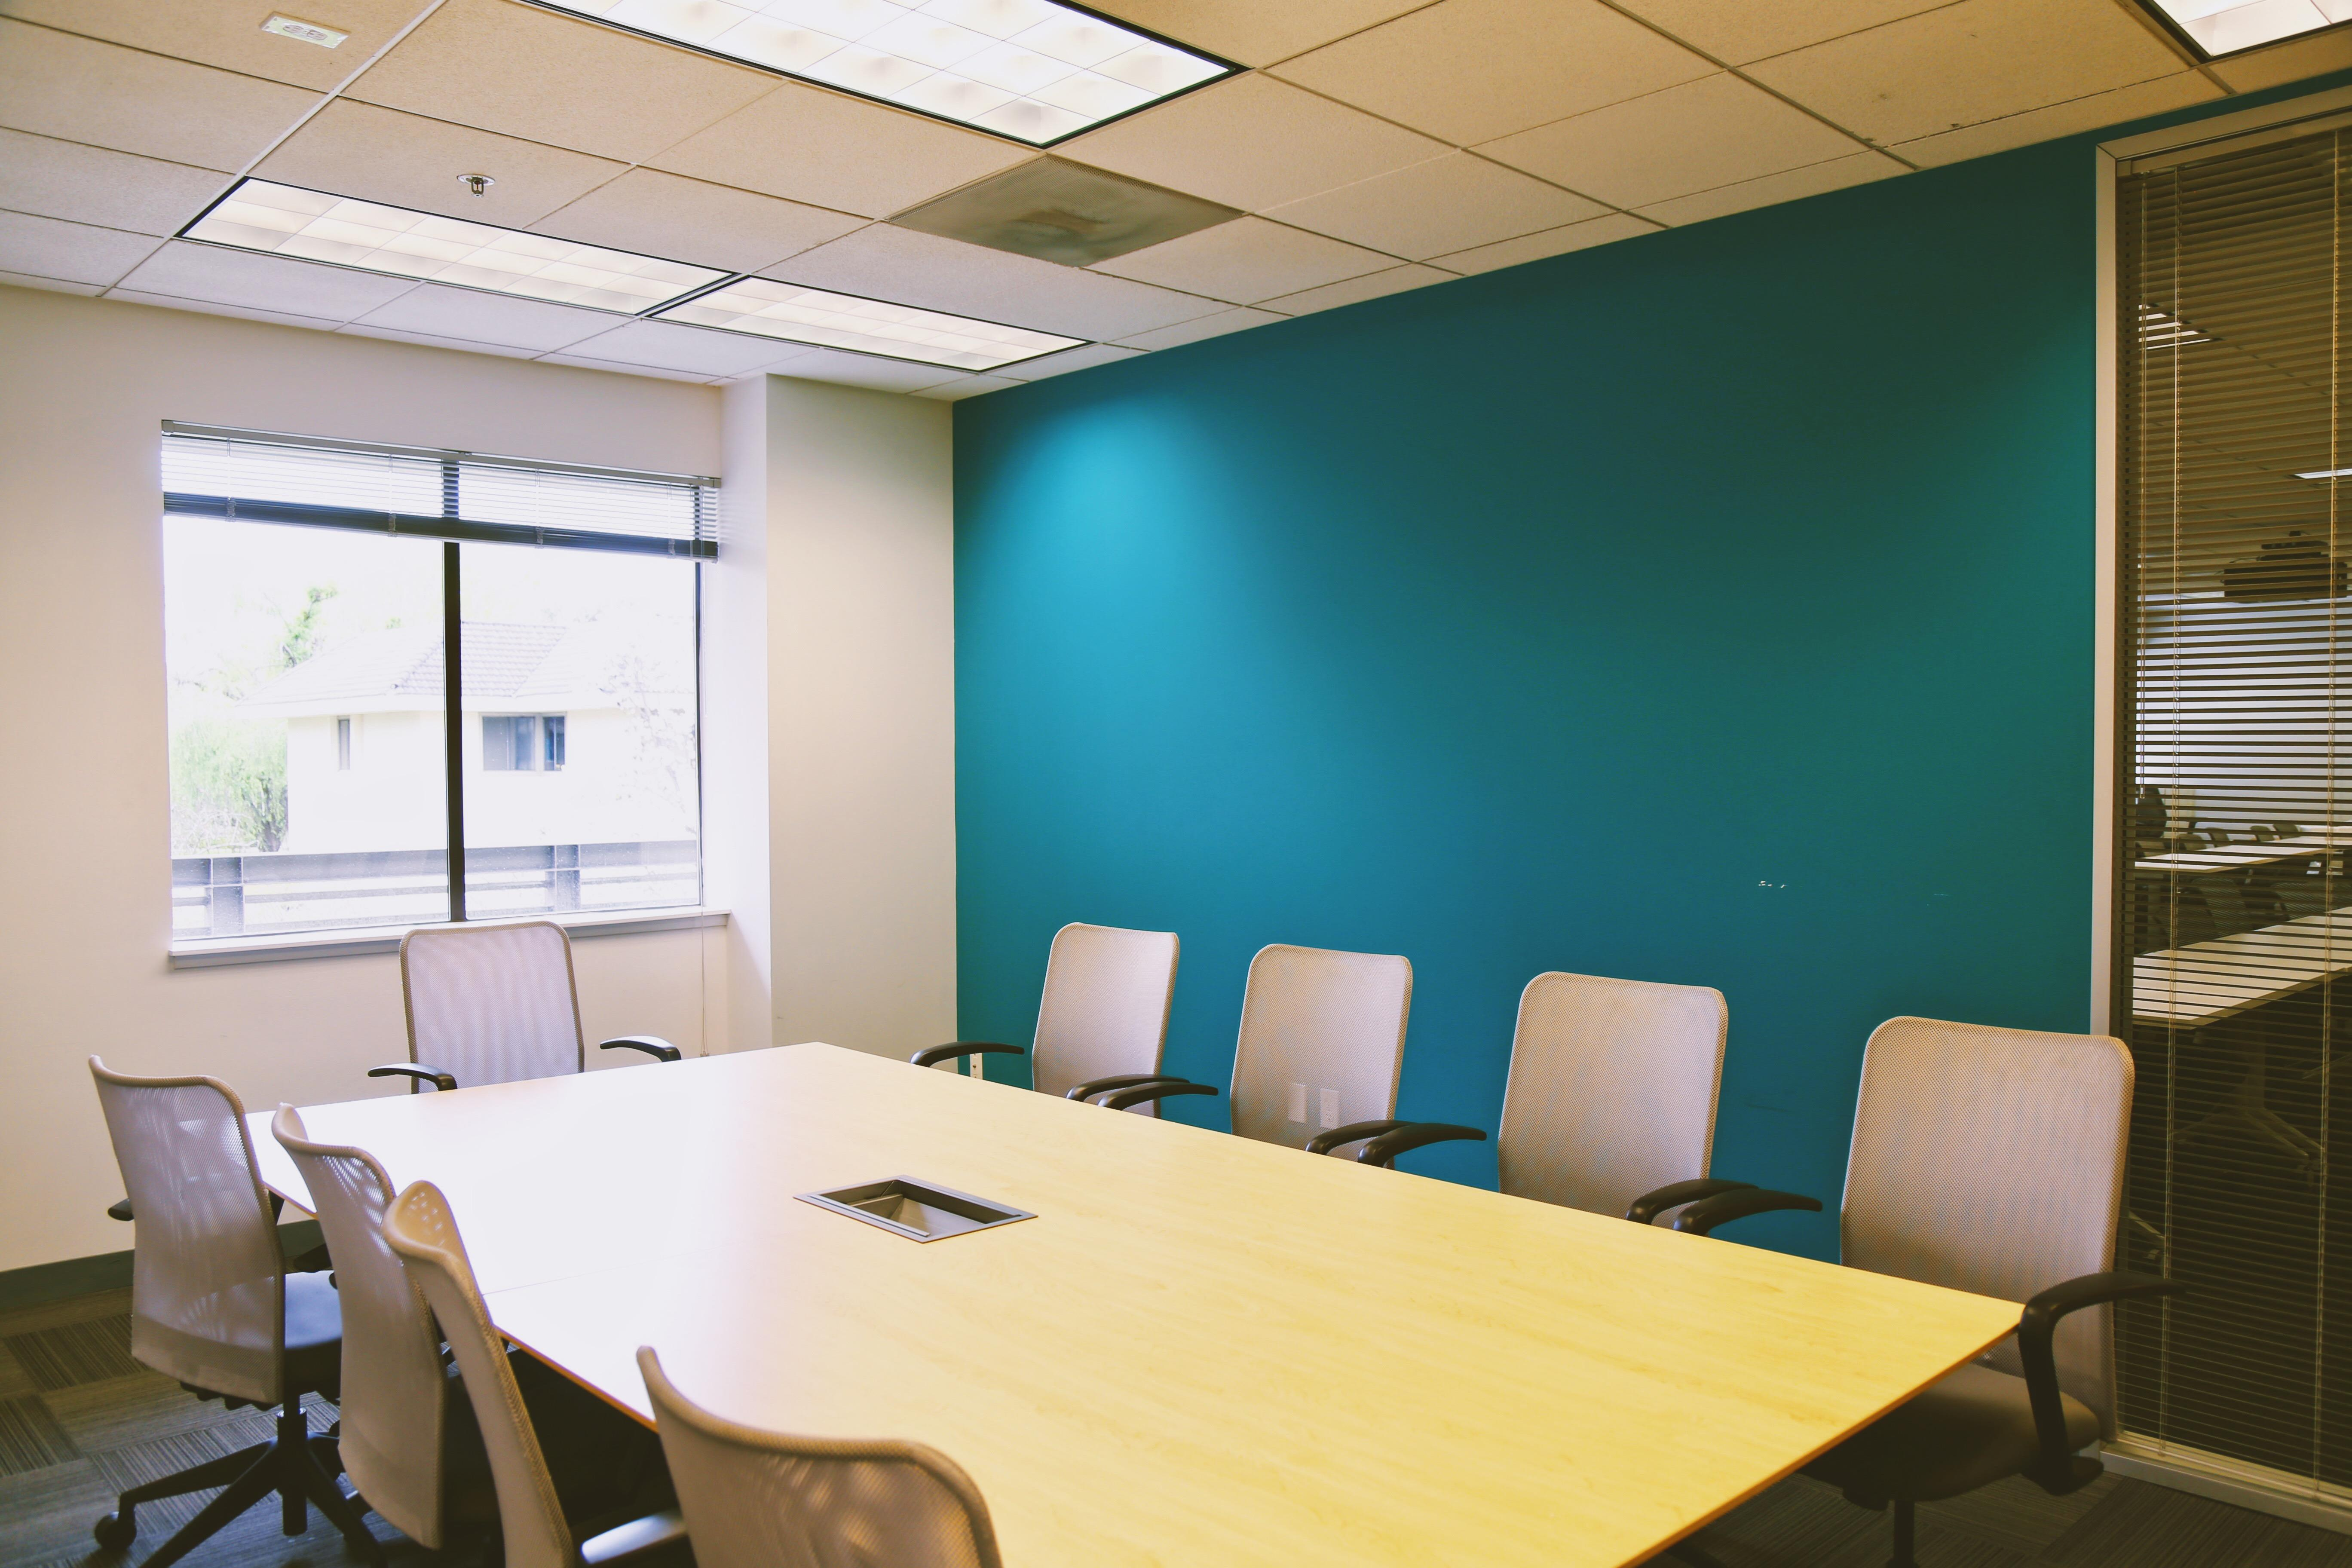 2 Waters Park - Large Meeting Room for 8-16 people